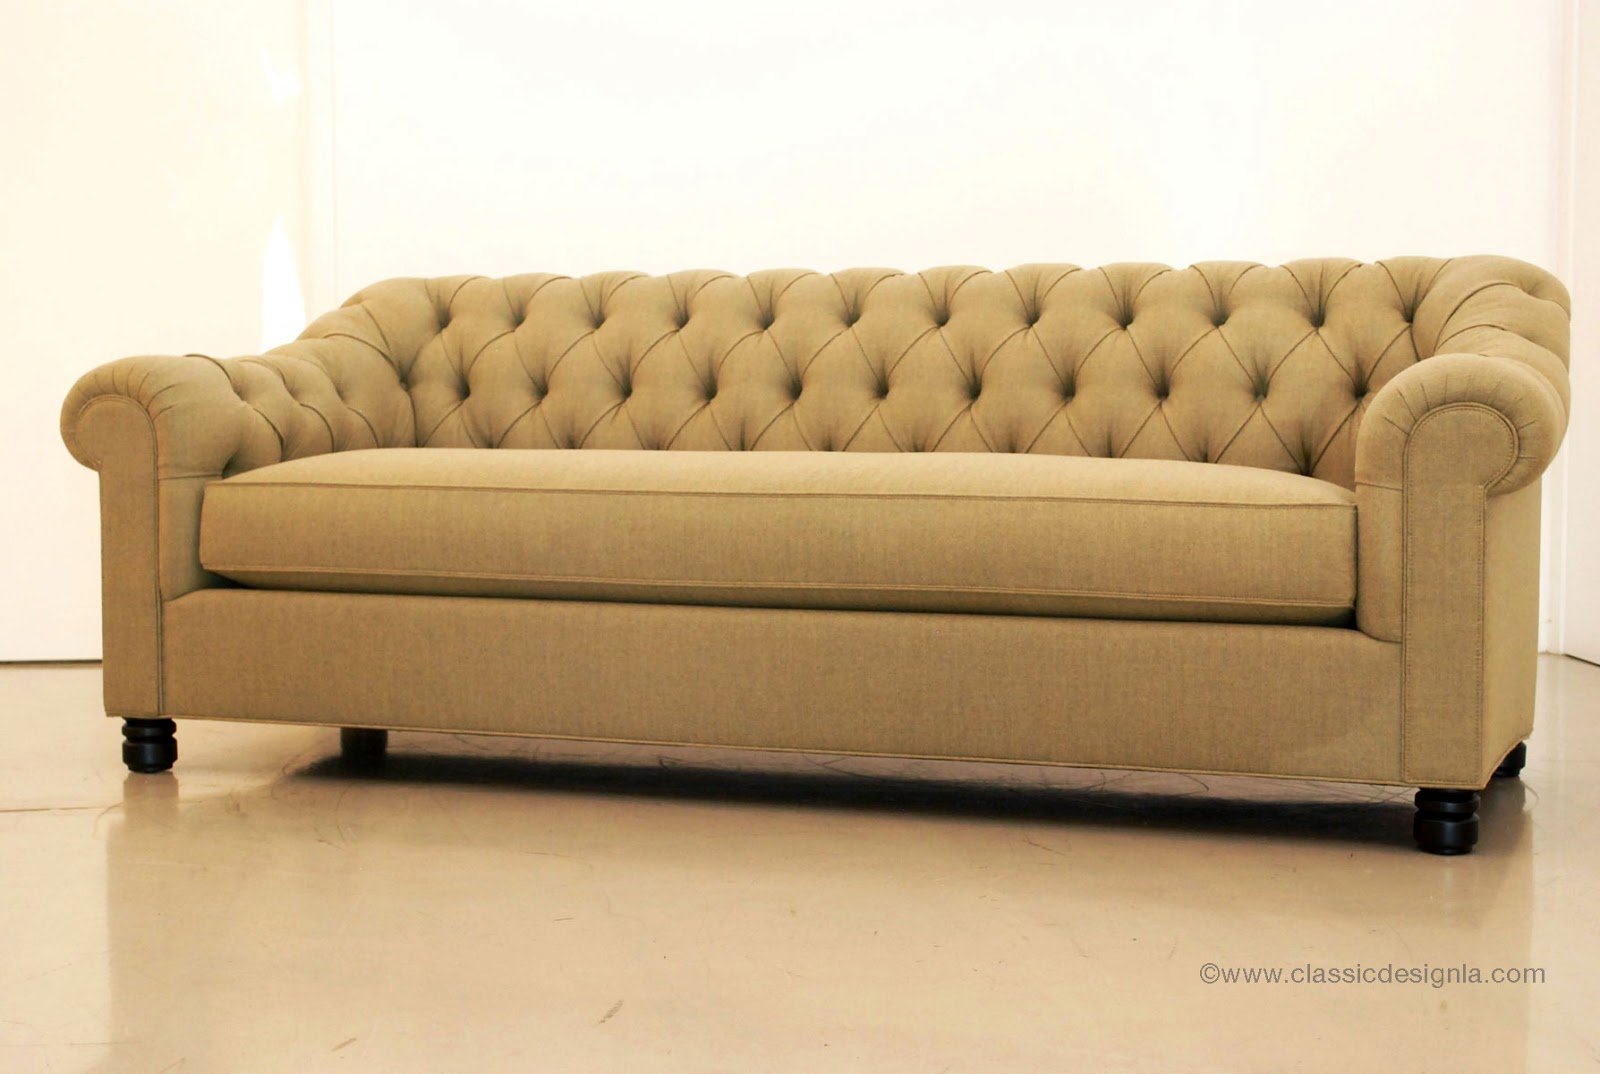 Chesterfield Sofa Classic Design: Custom Chesterfield Sofas